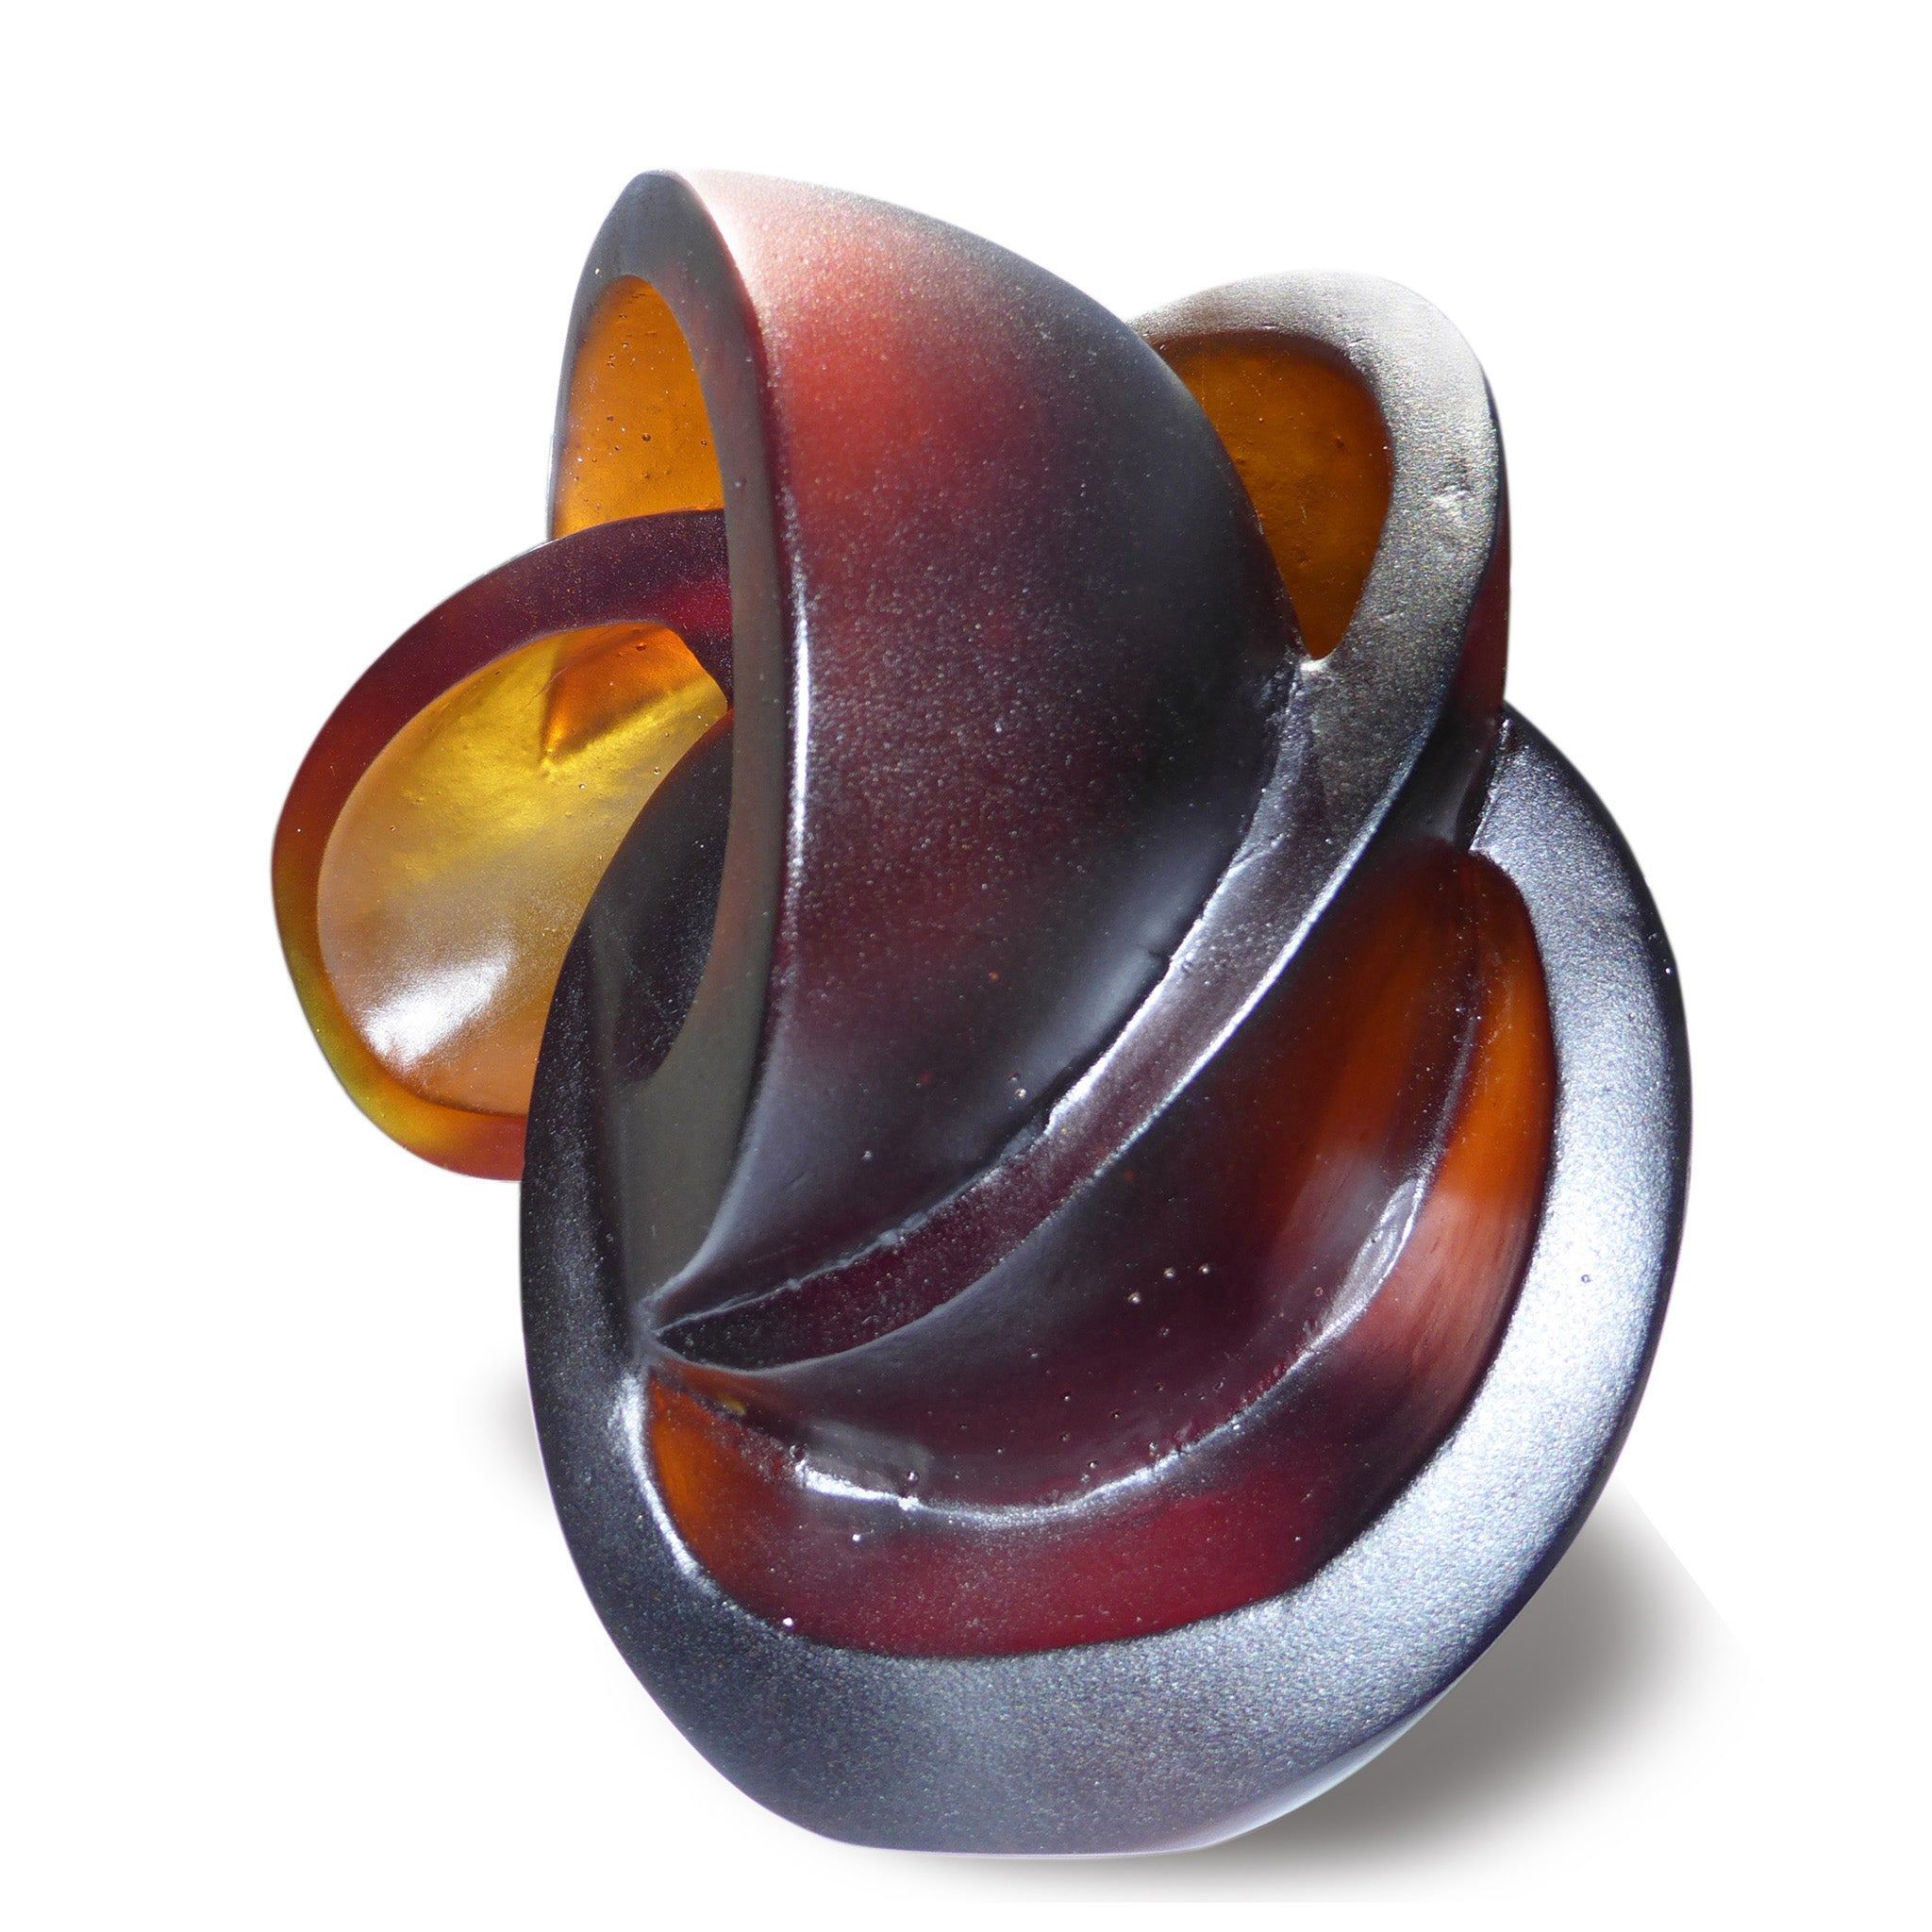 Abstract cast glass sculpture of the atom by Stephen Williams.